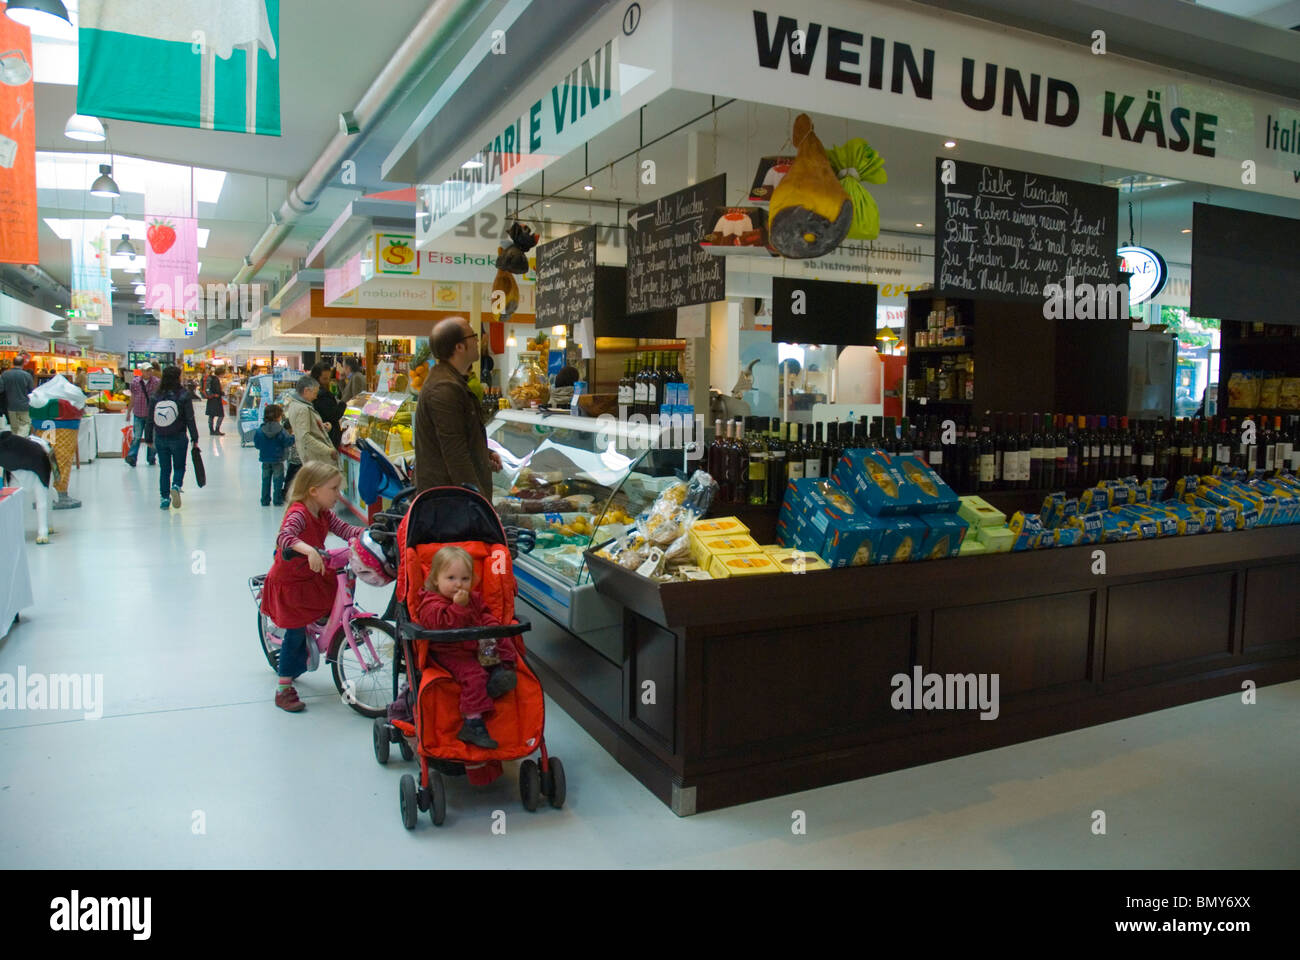 Wine and cheese stall Marheineke Markthalle market hall Kreuzberg west Berlin Germany Europe - Stock Image